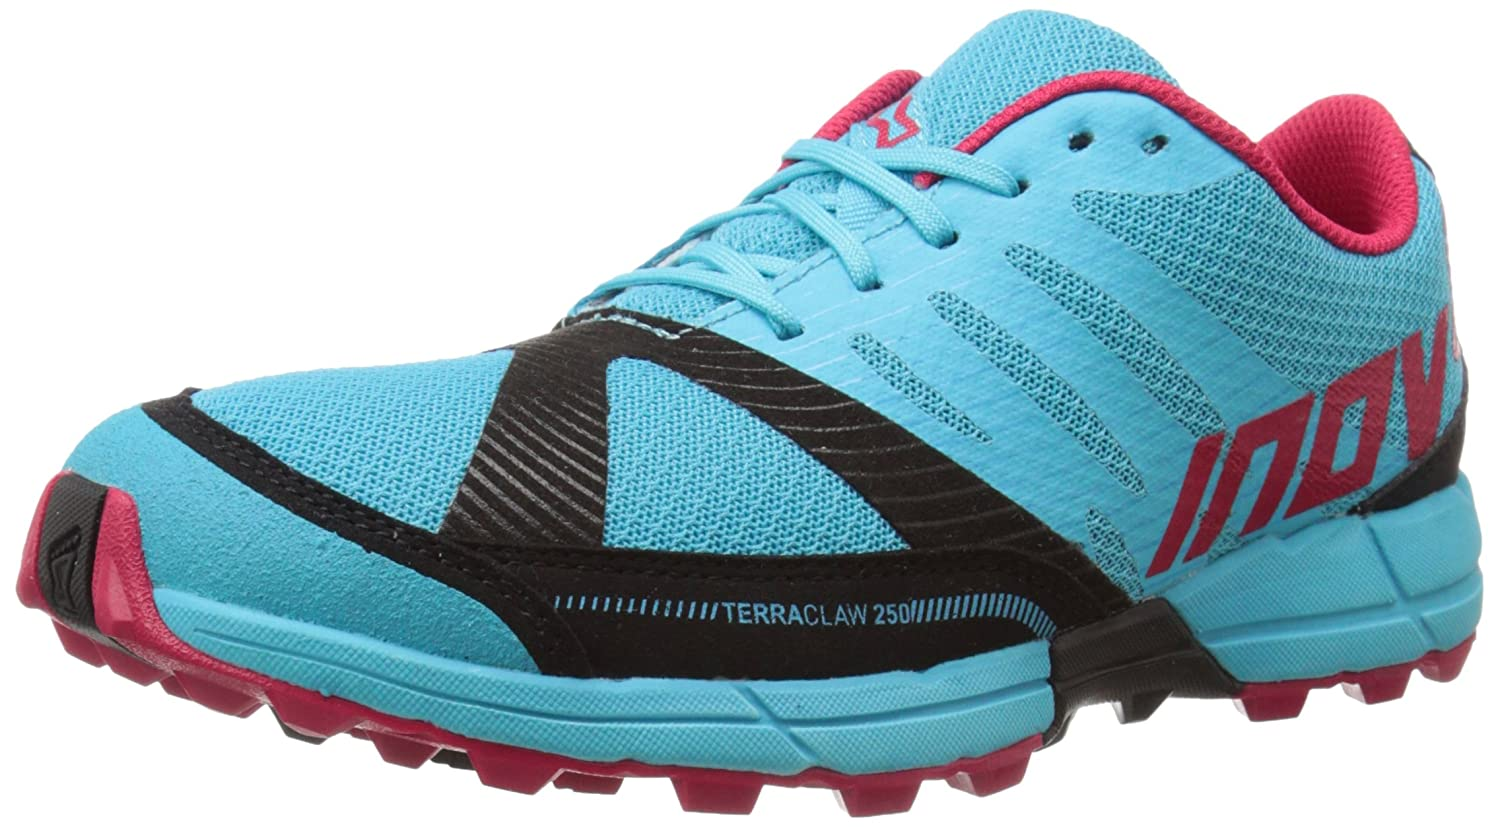 Inov-8 Women's Terraclaw 250 Trail Running Shoe B00YC4BW3Y 10.5 B(M) US|Blue/Berry/Black